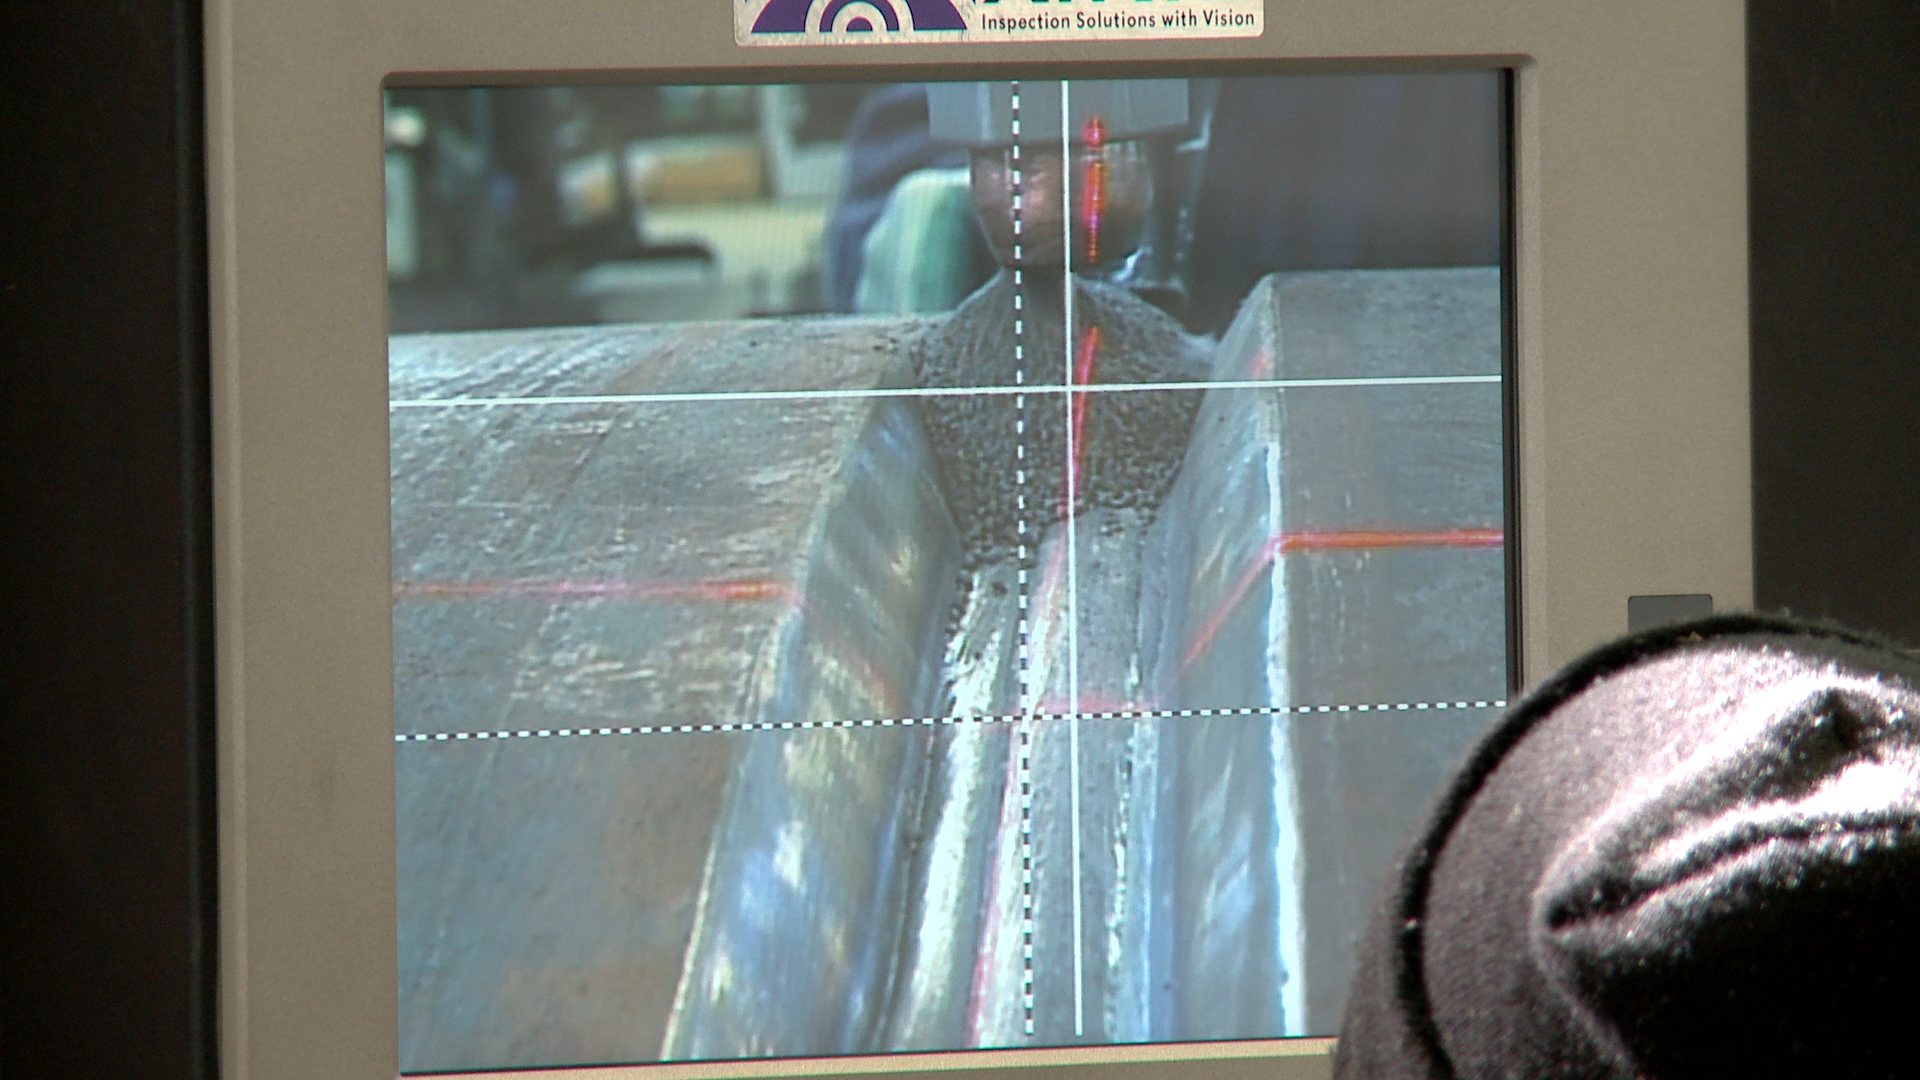 laser vision seam tracking for a subarc column and boom.